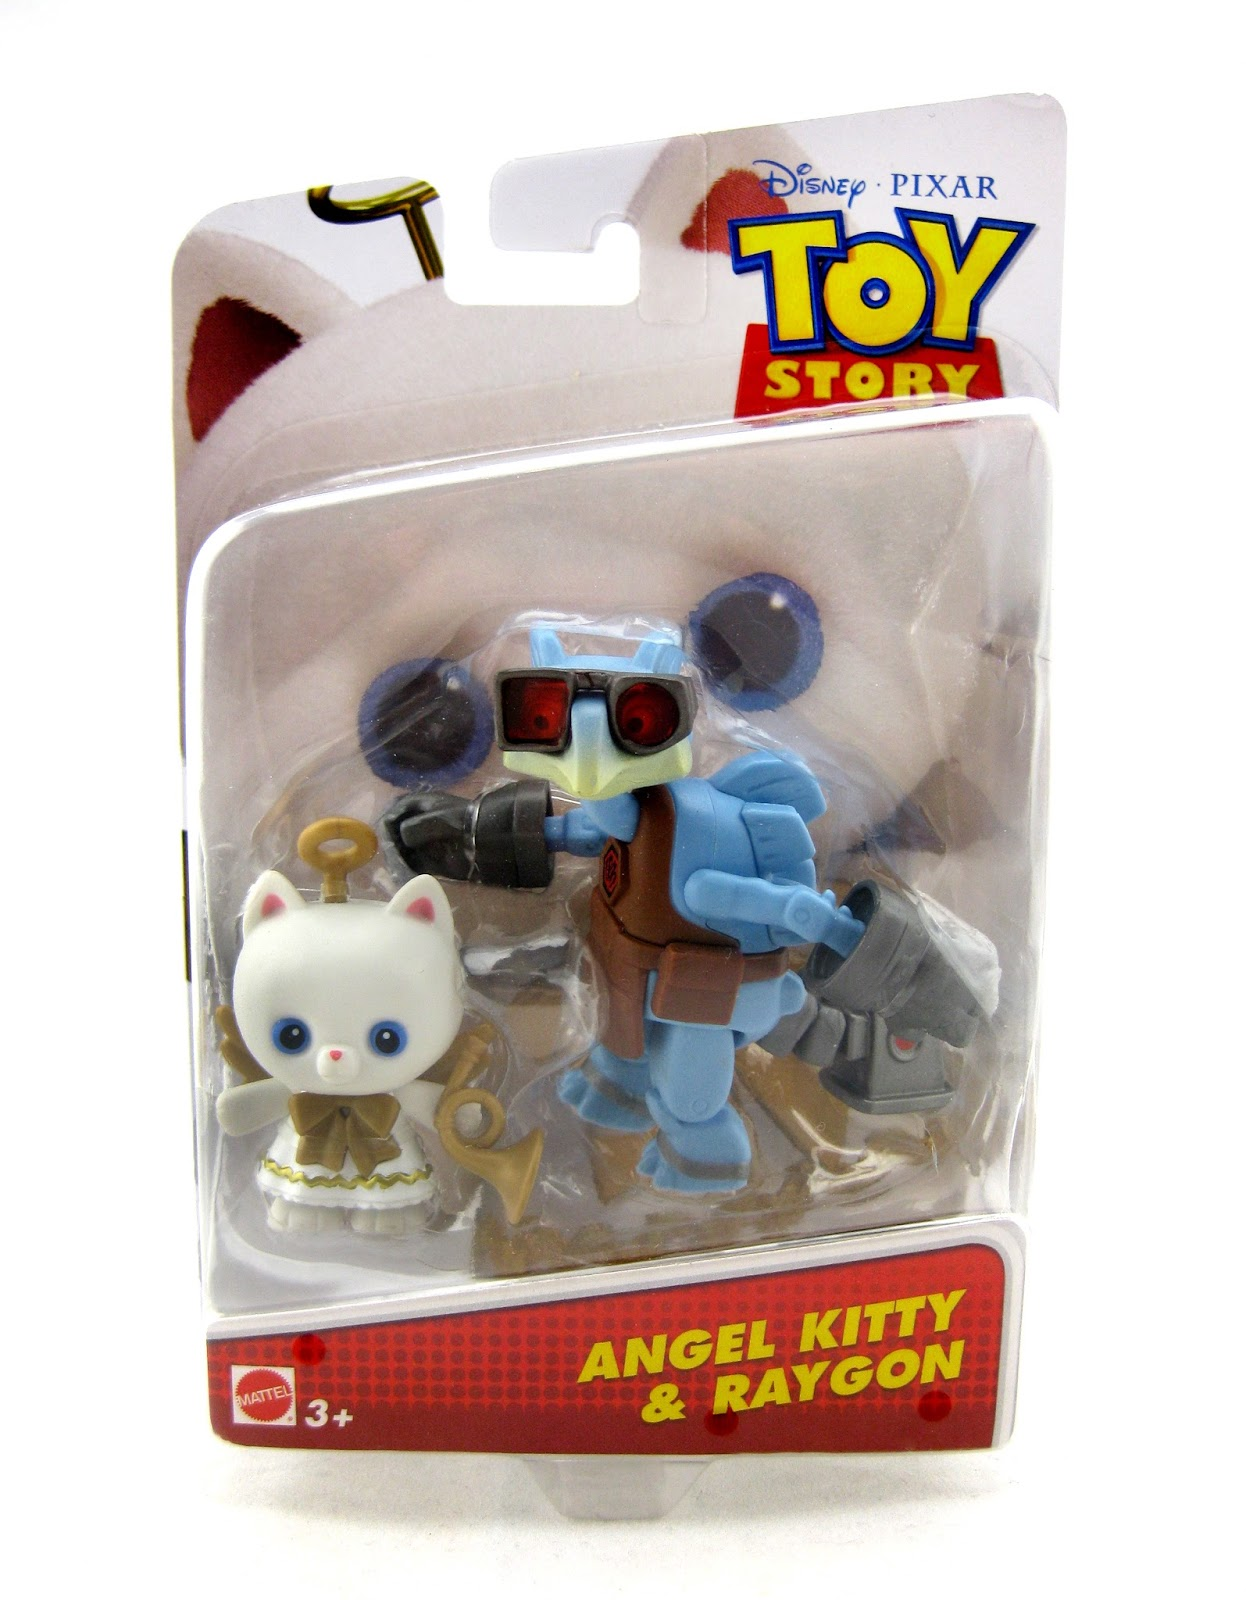 Hello Kitty And Toy Story Jessie Images : Dan the pixar fan toy story that time forgot angel kitty